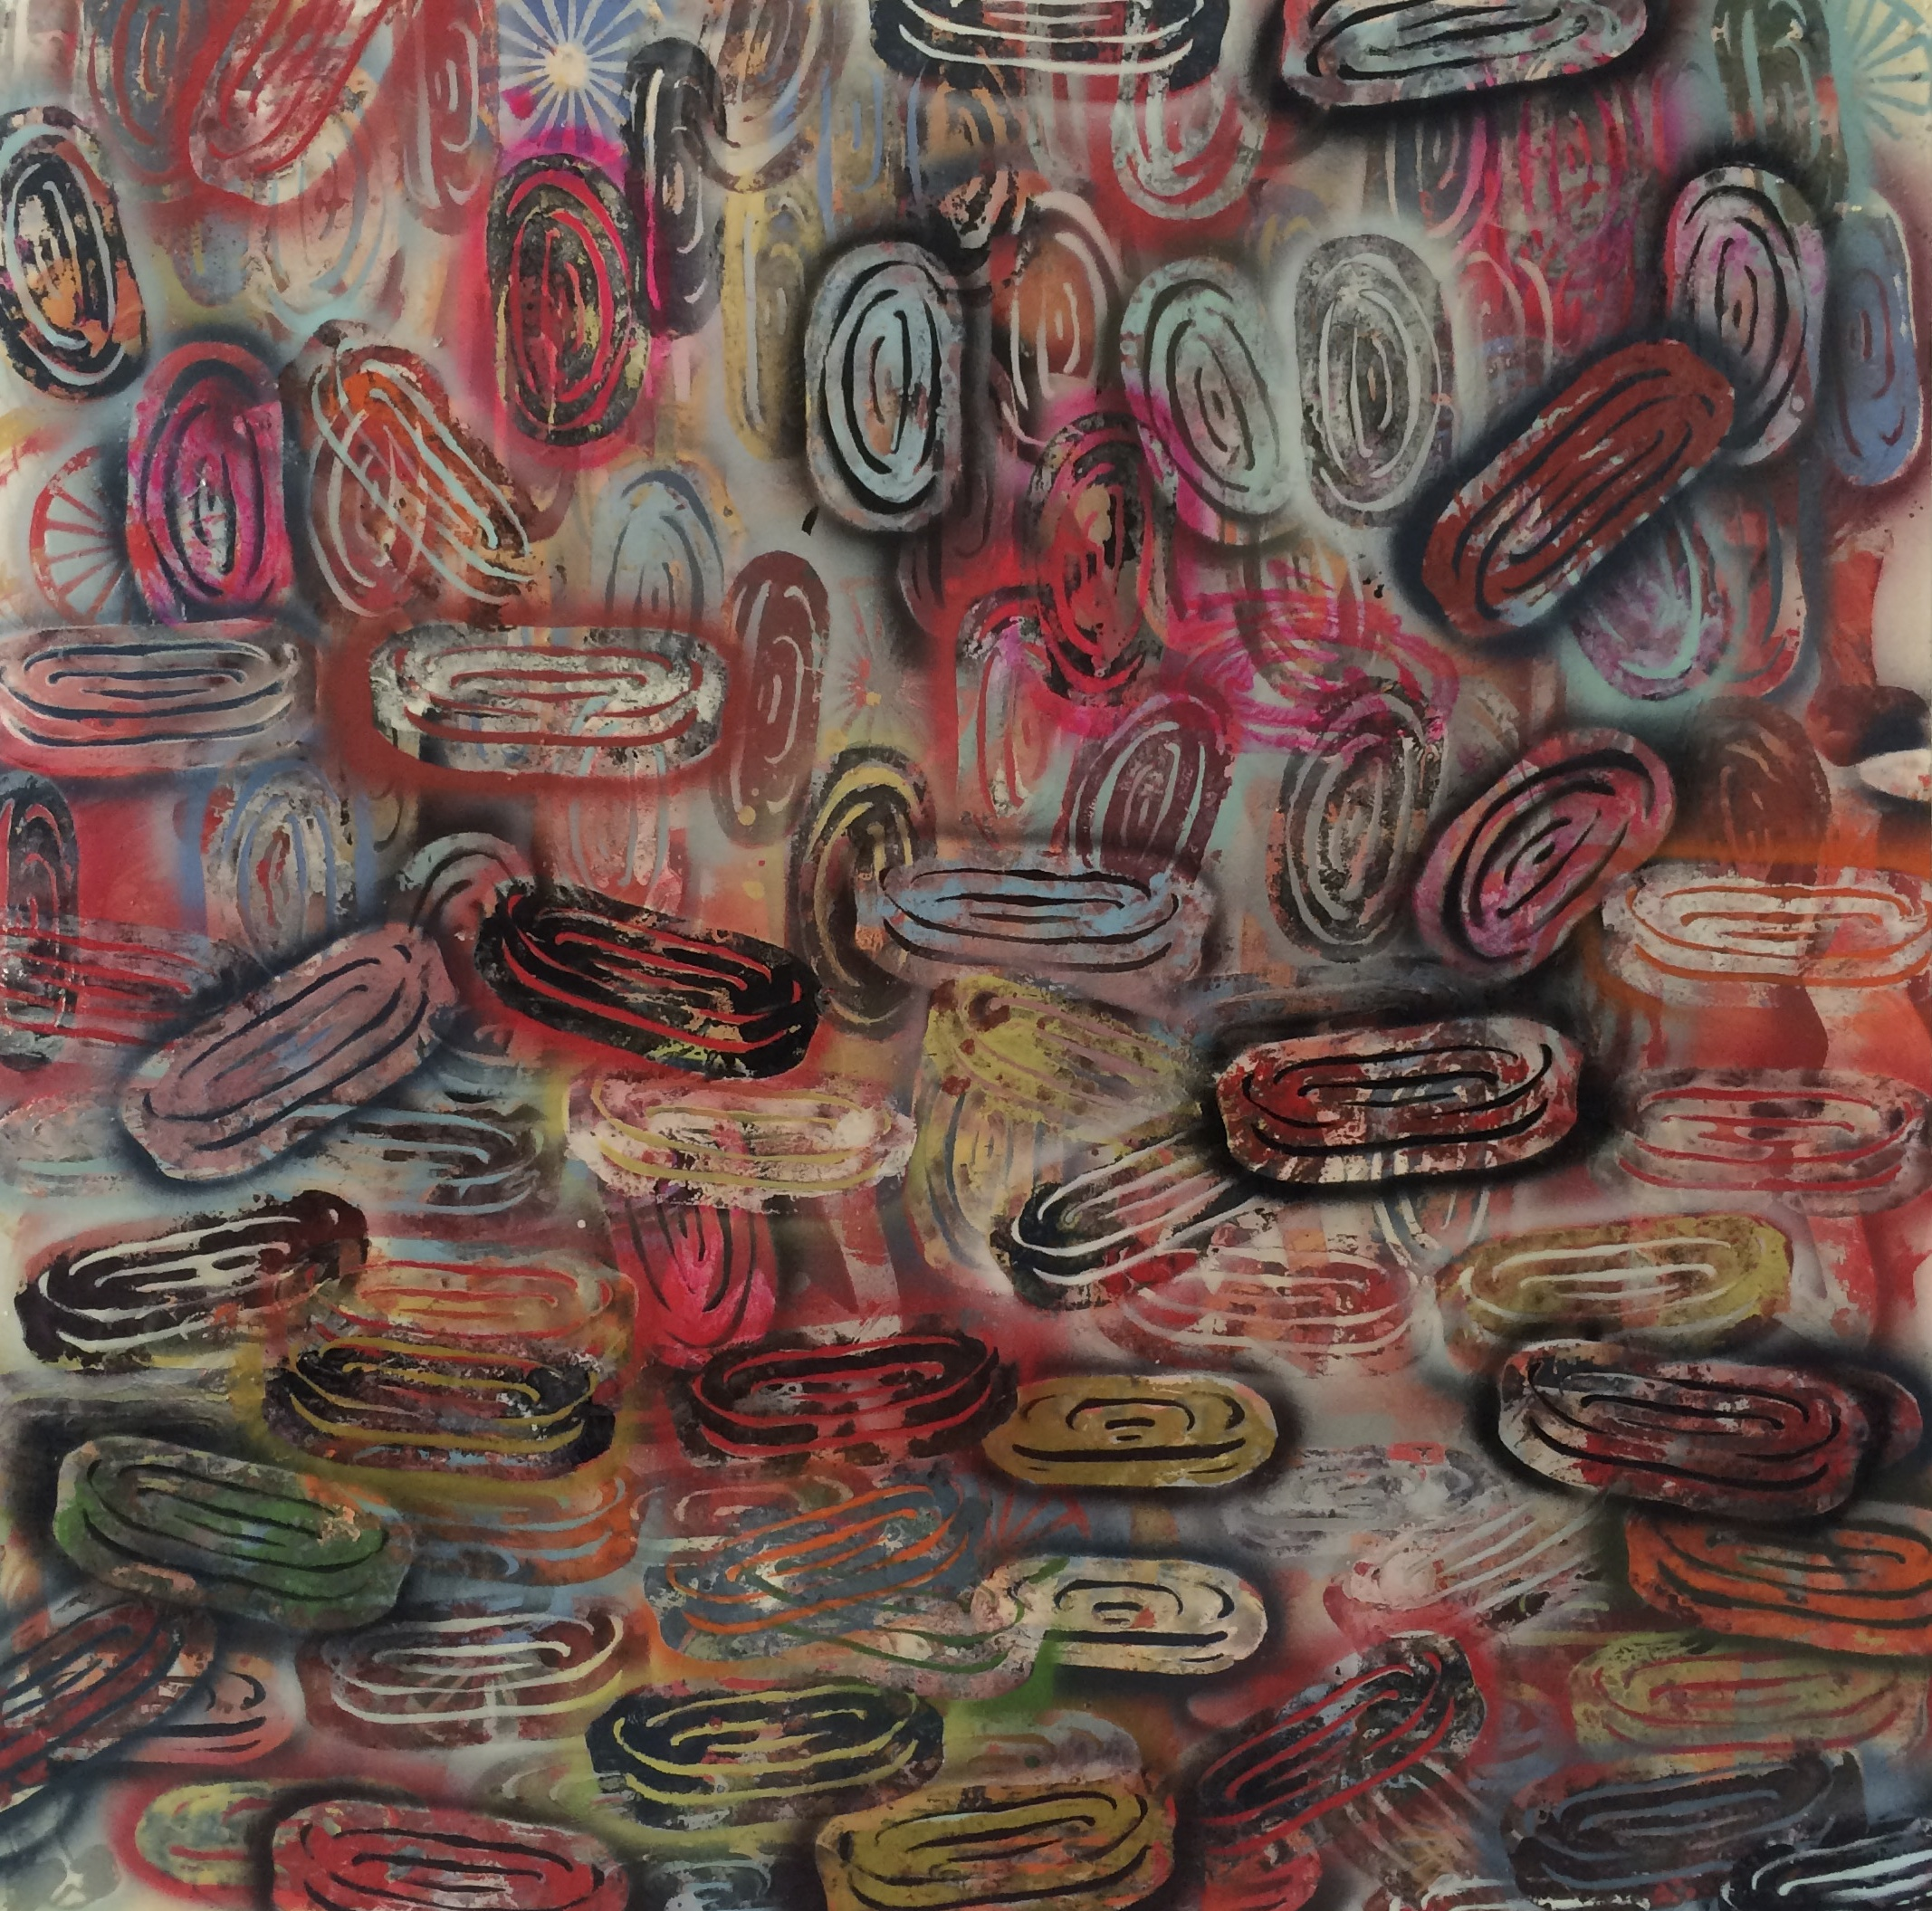 Guston's Wheel 2, 2015